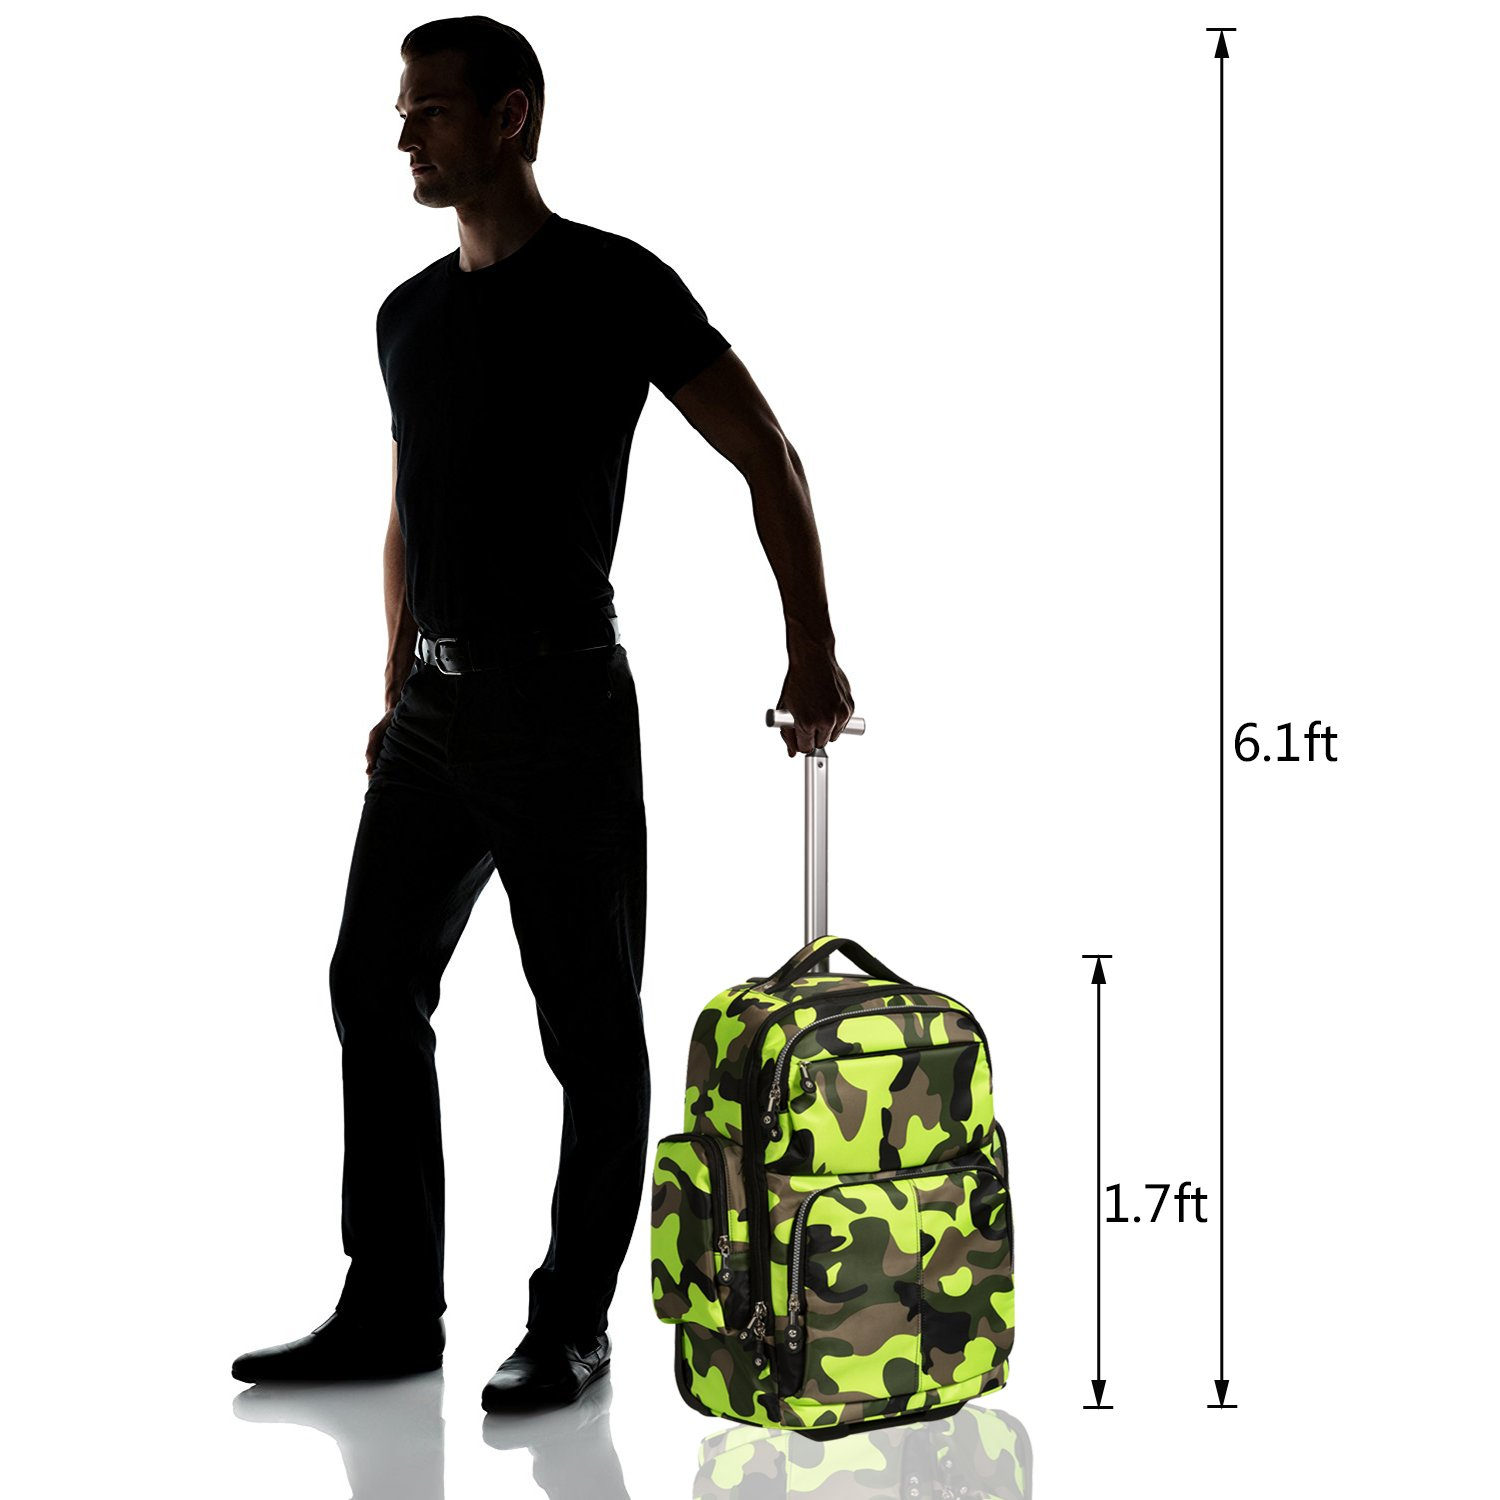 427c5190b7 Amazon.com  HollyHOME 20 inches Large Storage Multifunction Waterproof Travel  Wheeled Rolling Luggage Backpack for Boys Travelling School Books Laptop  Bag